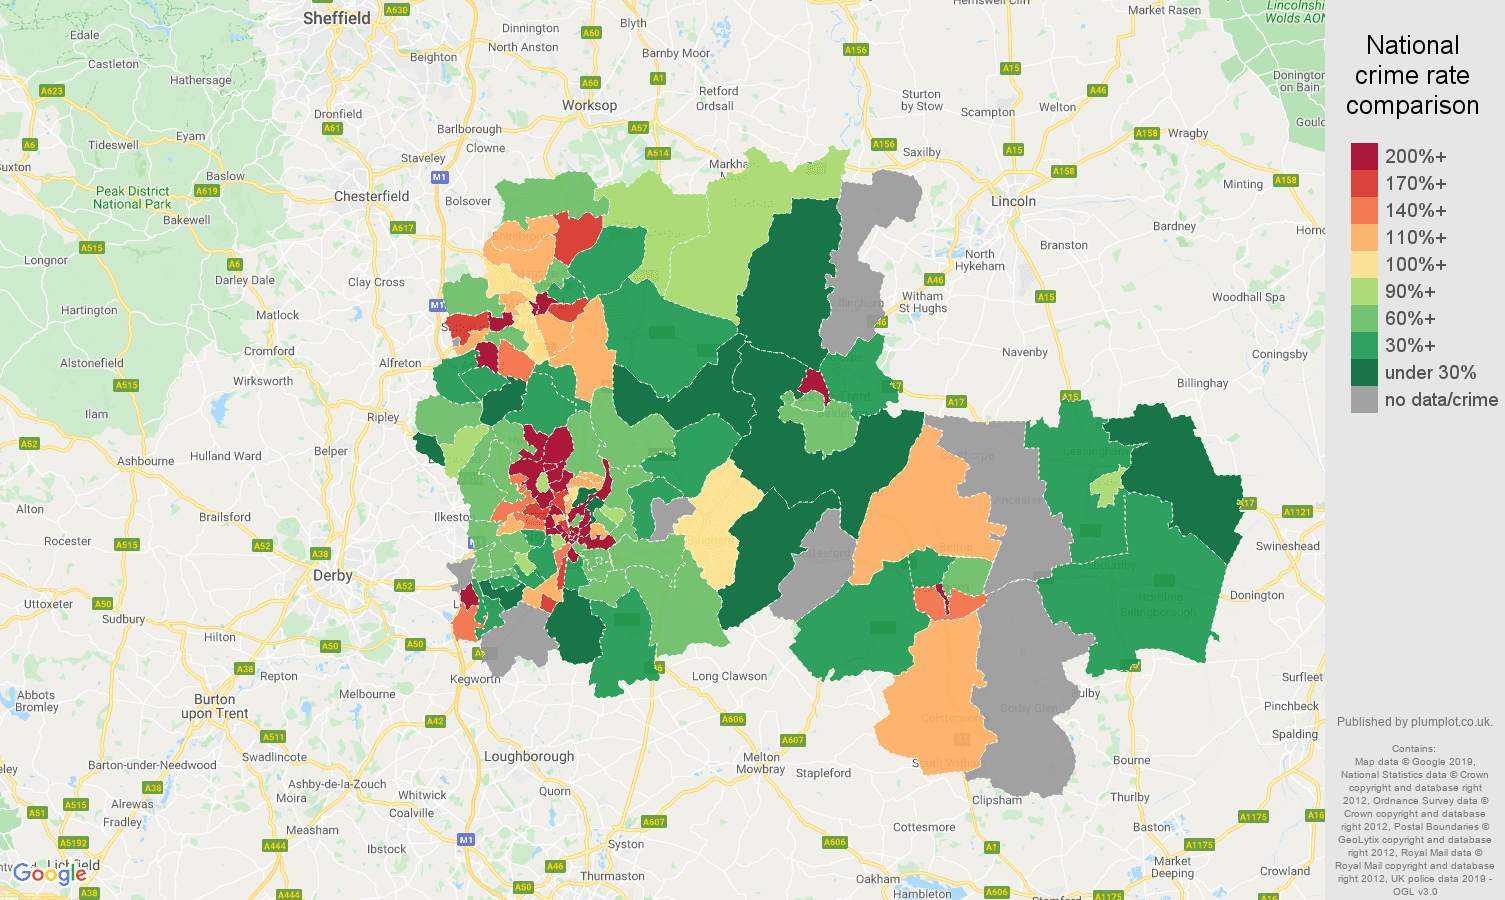 Nottingham possession of weapons crime rate comparison map